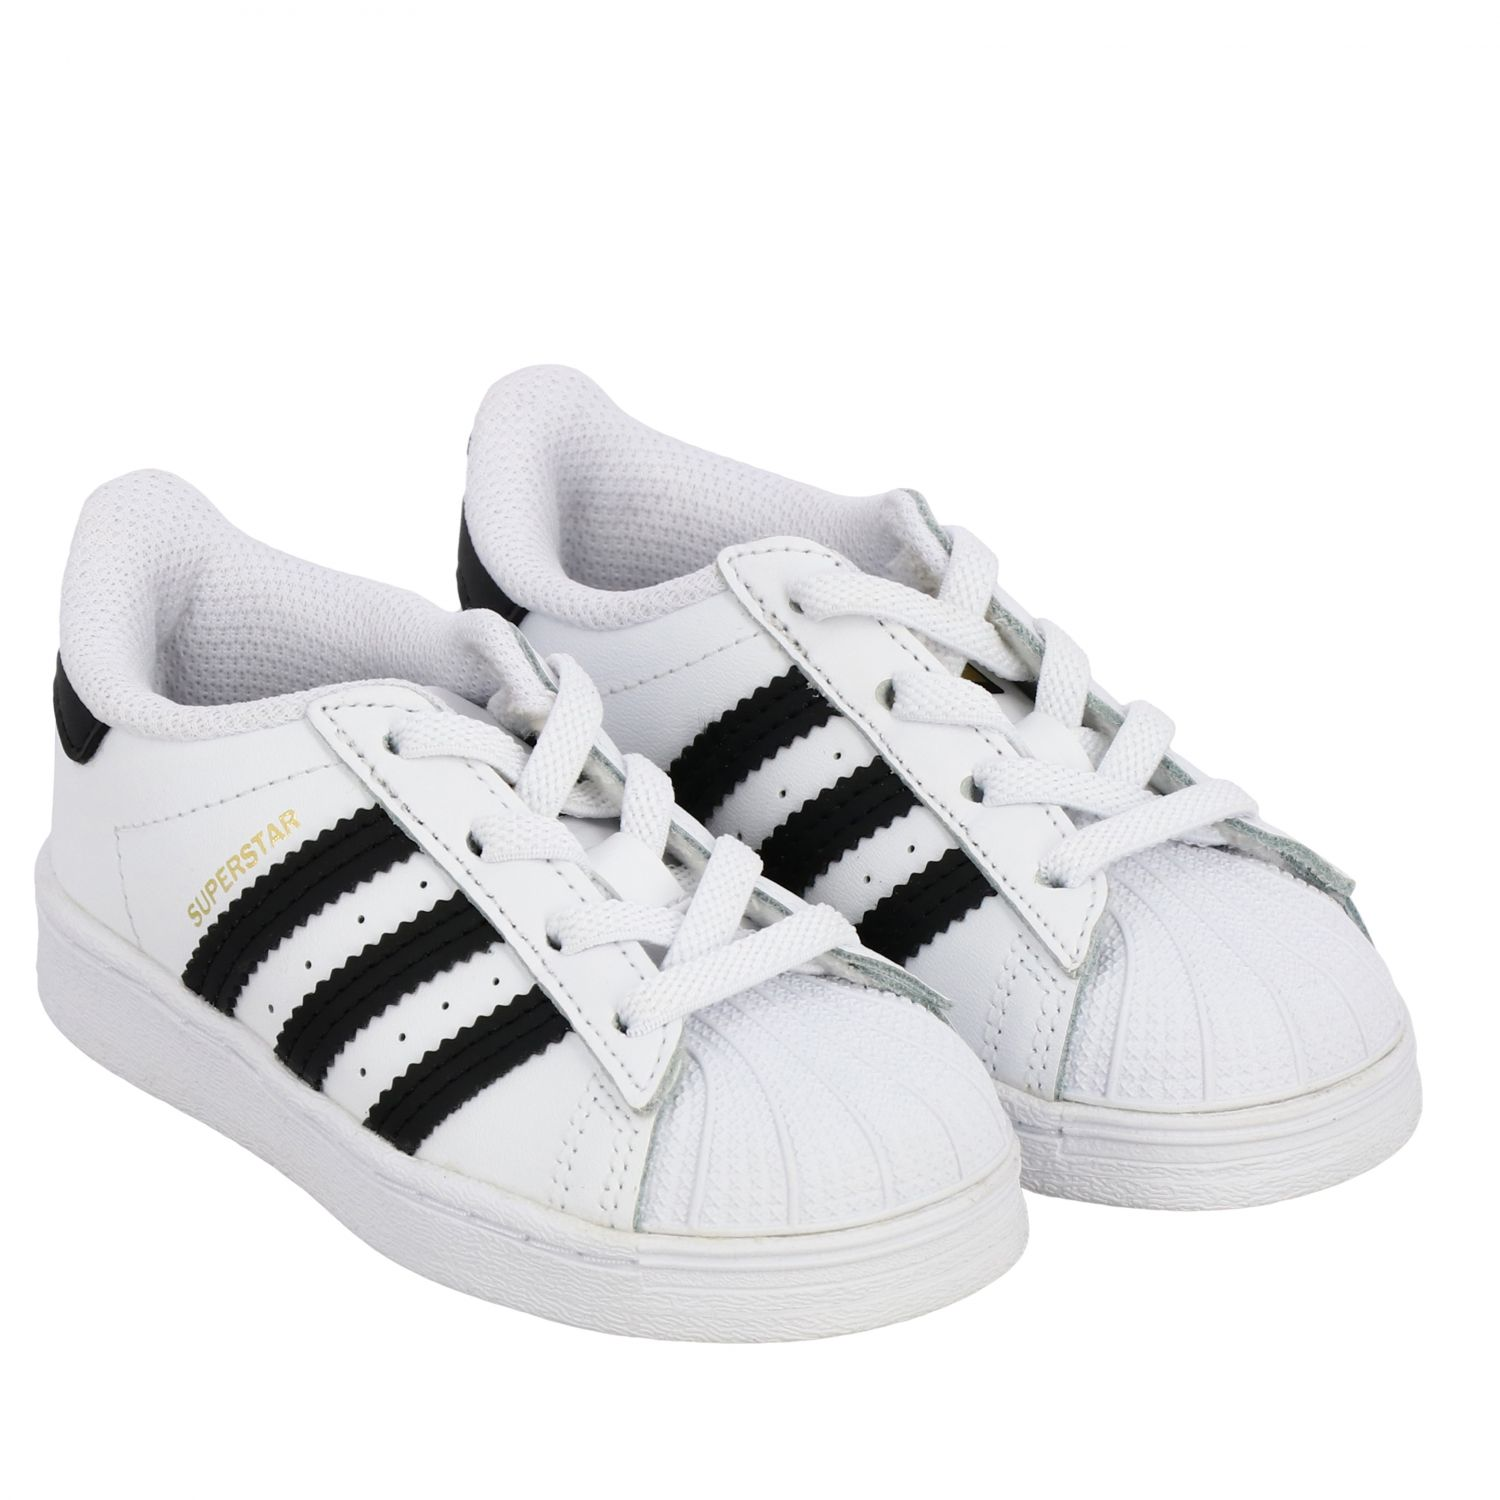 Shoes Adidas Originals: Superstar Adidas Originals leather sneakers white 2